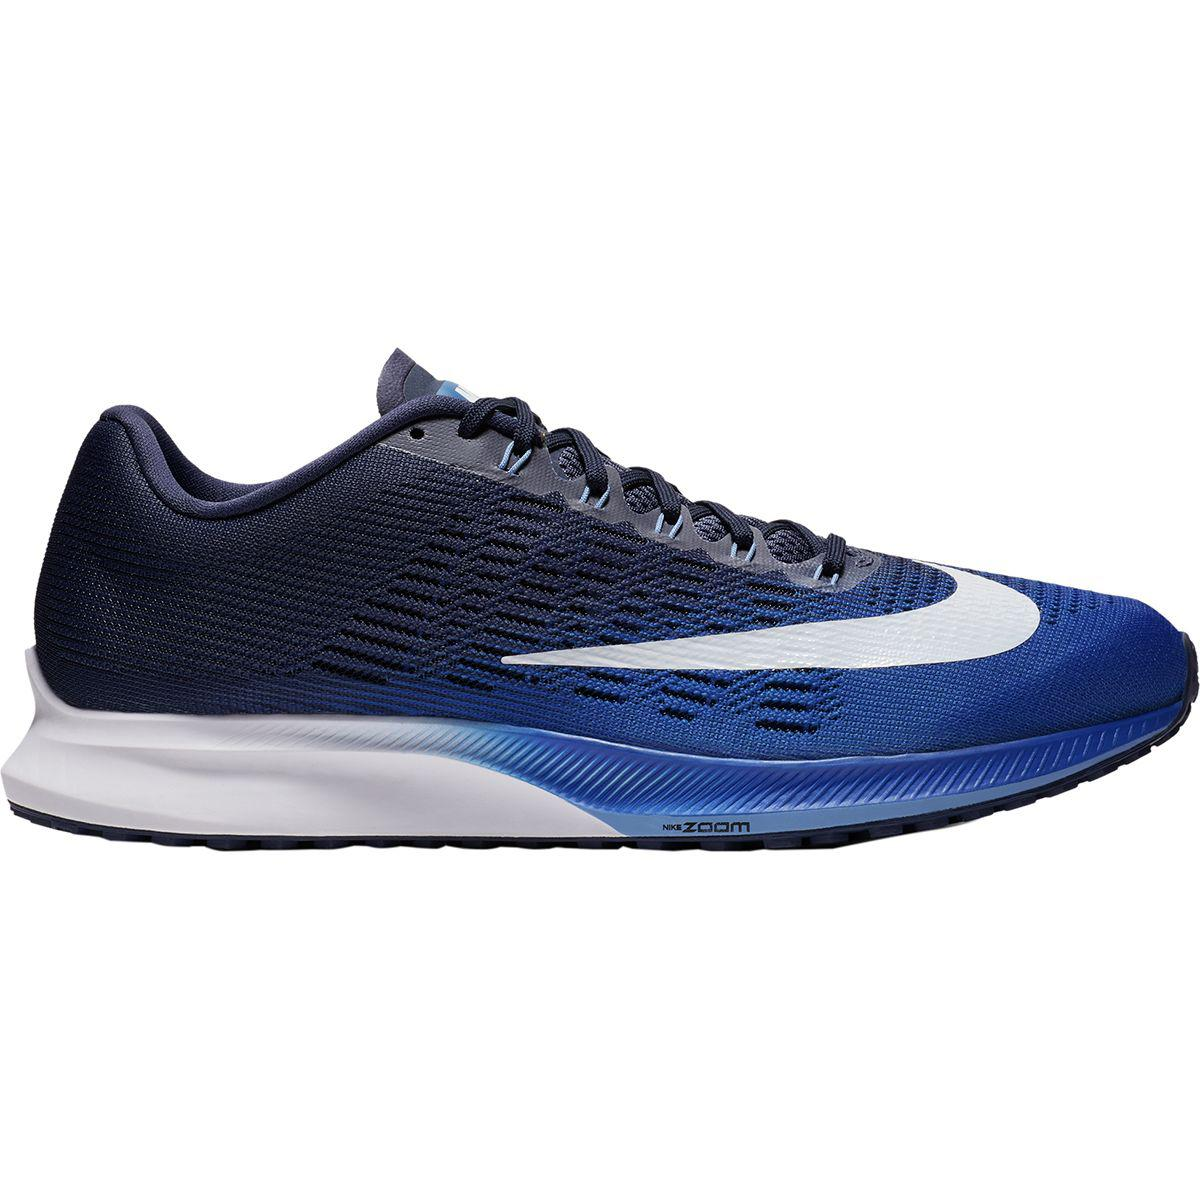 best service 00fb4 d08df Lyst - Nike Air Zoom Elite 9 Running Shoe in Blue for Men